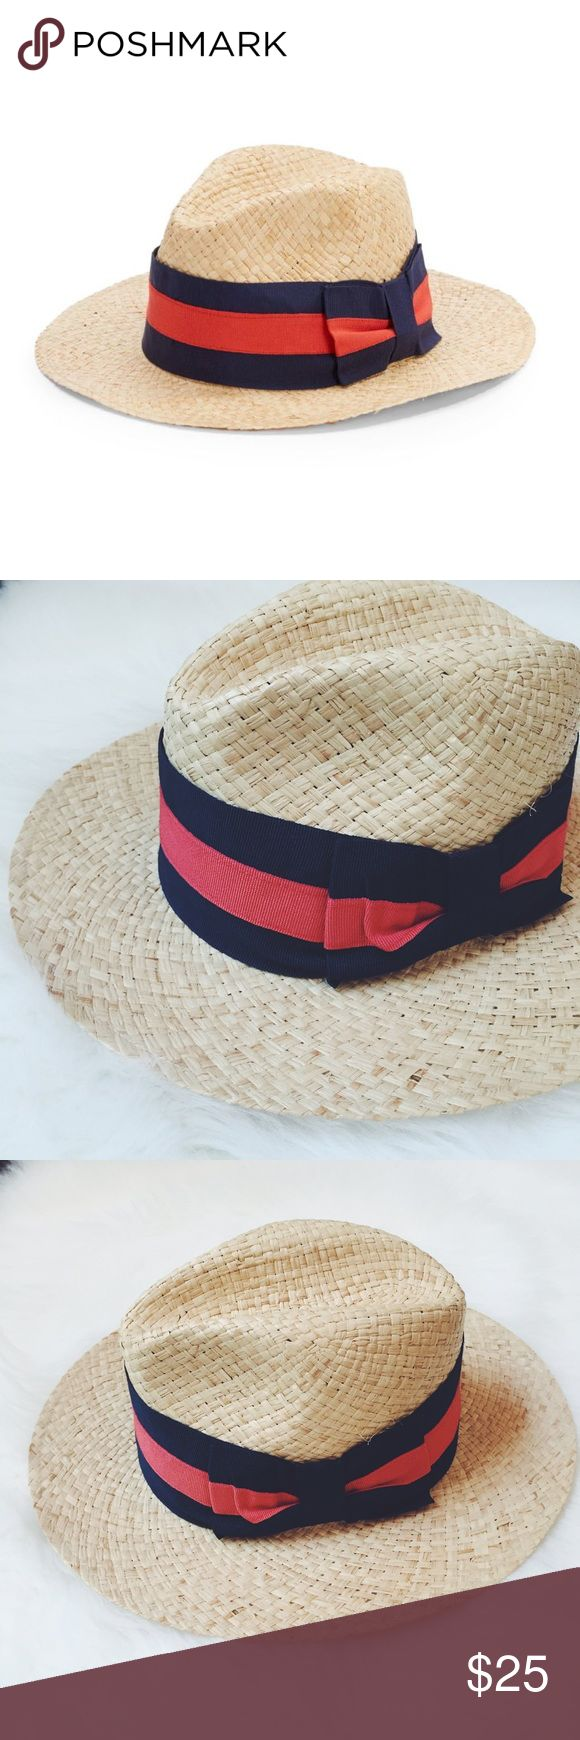 Saks Fifth Avenue Straw Hat Saks Fifth Avenue made in Italy Straw hat, 100% natural straw, do not wash, do not dry clean, do not bleach, do not iron. Color of the band/bow is navy/red. Brand new without tags, never wore it. Just asking what I paid for. Saks Fifth Avenue Accessories Hats